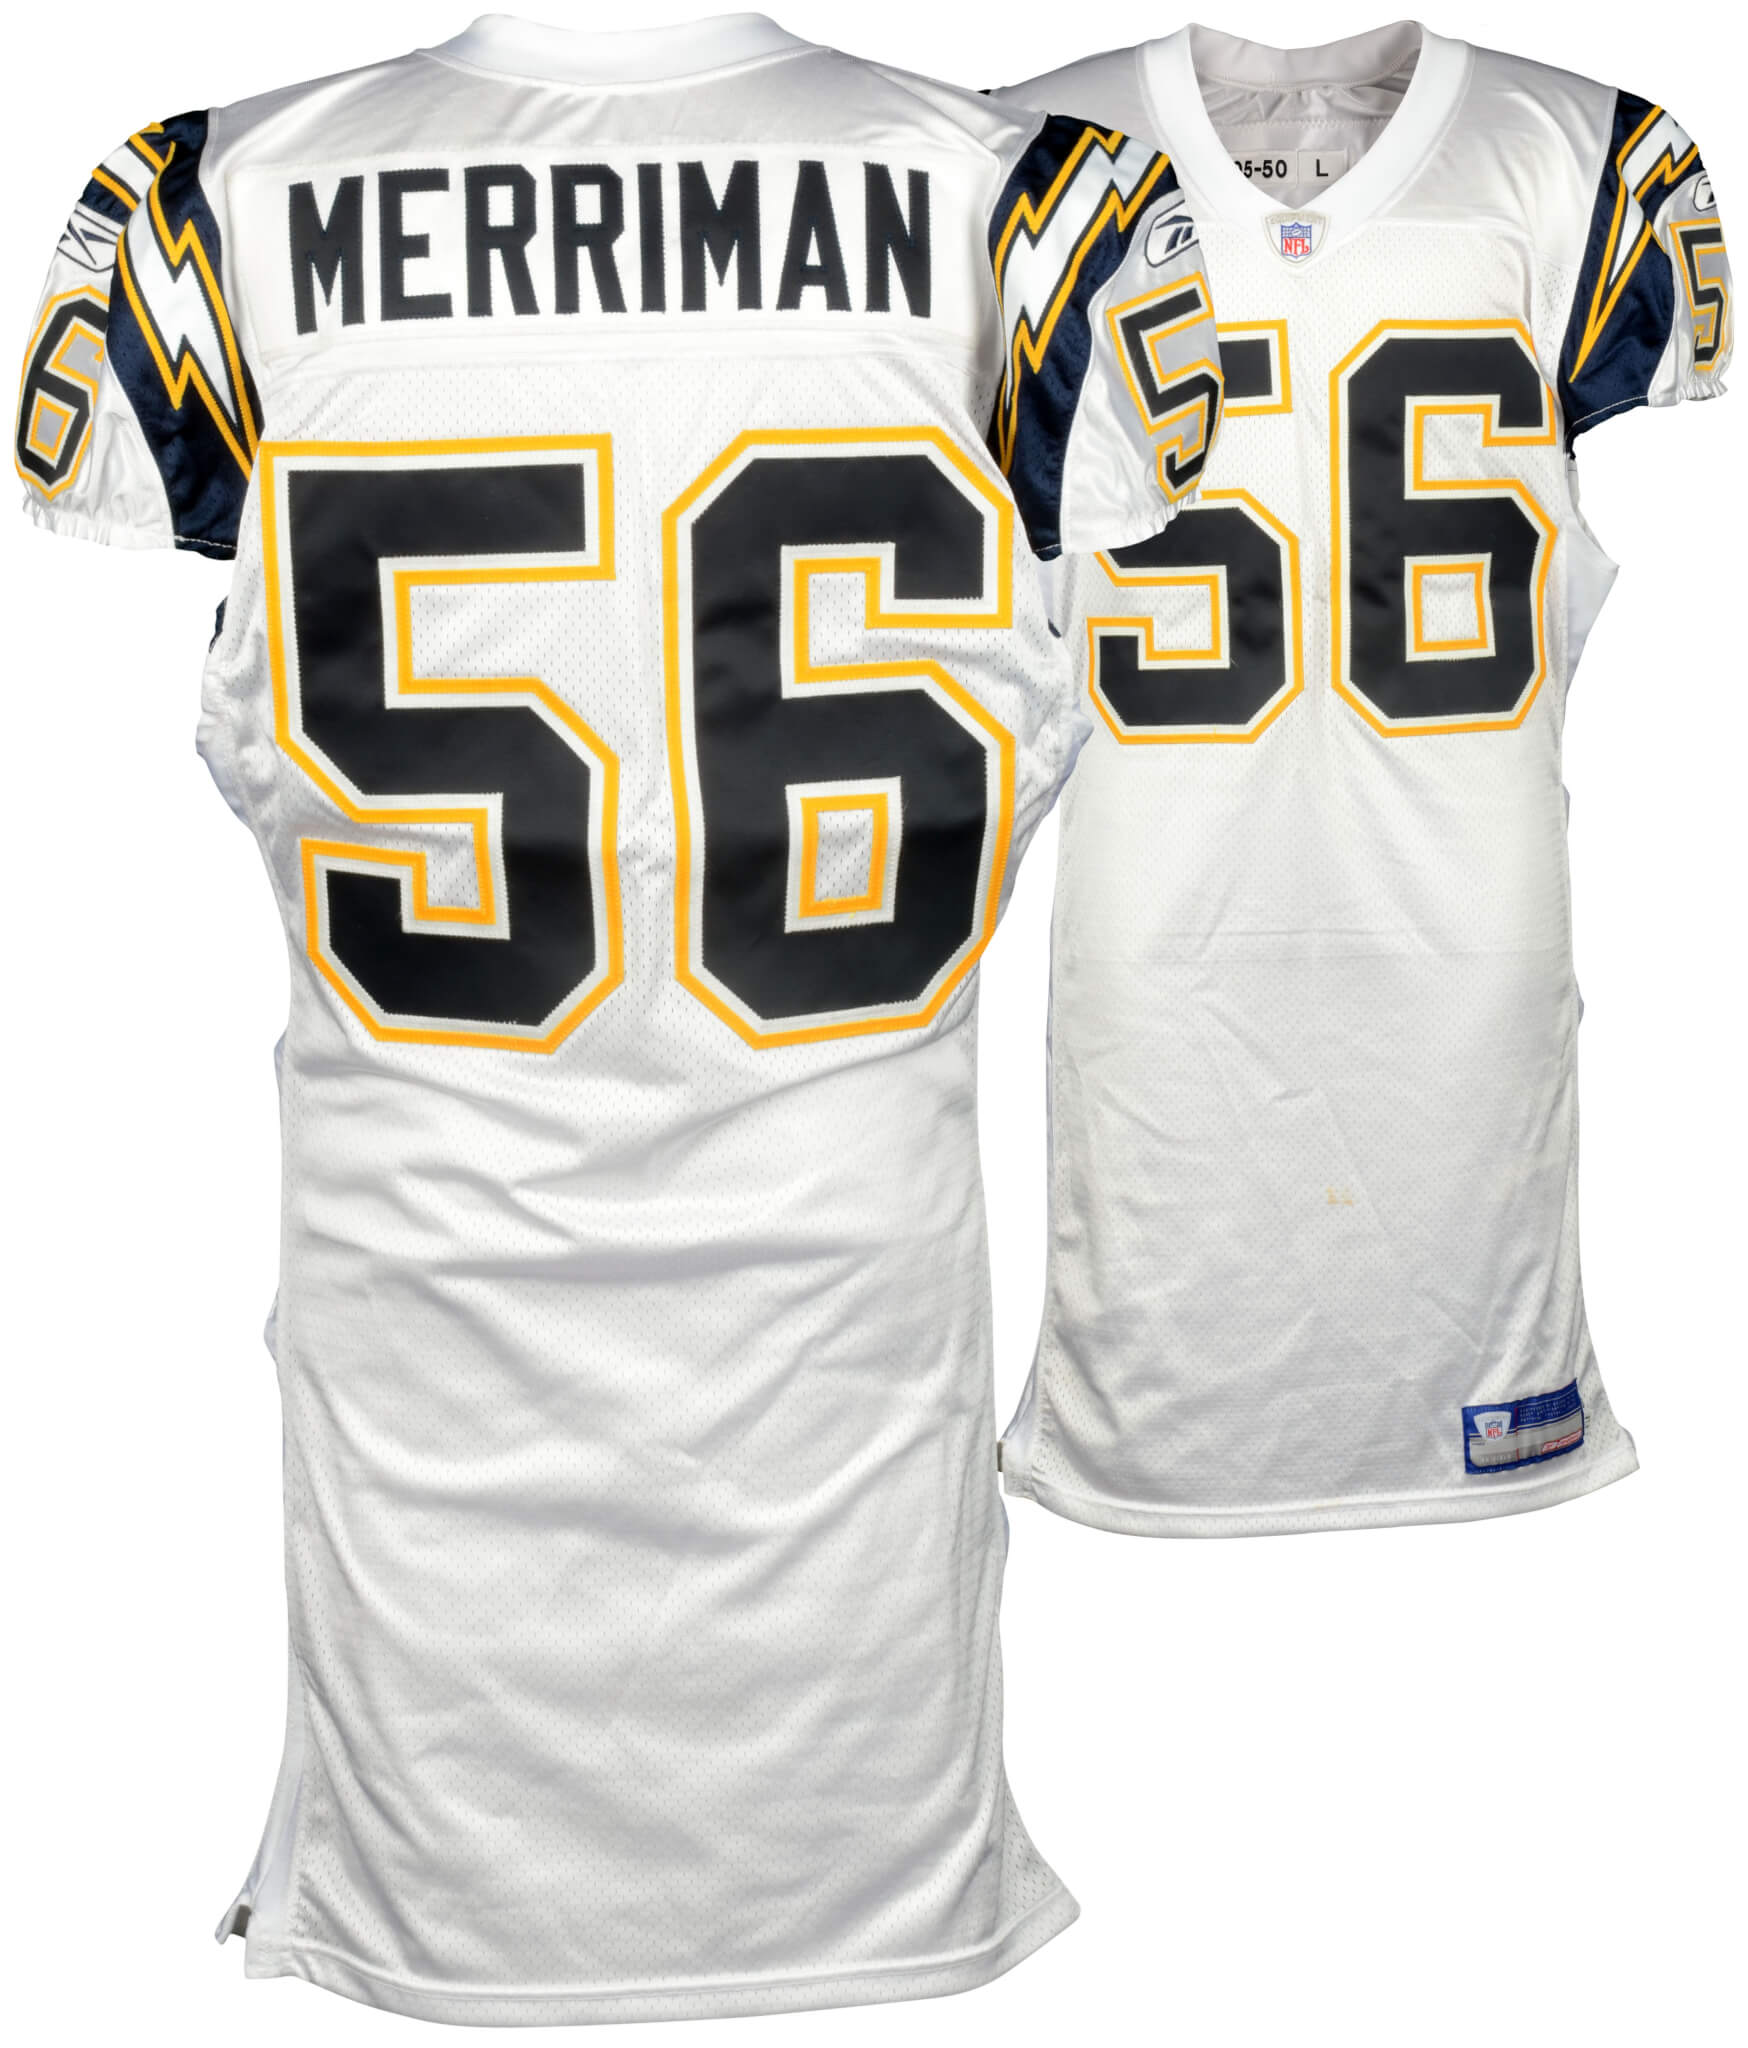 Shawne Merriman San Diego Chargers Game-Used White #56 Jersey from 2005 Season